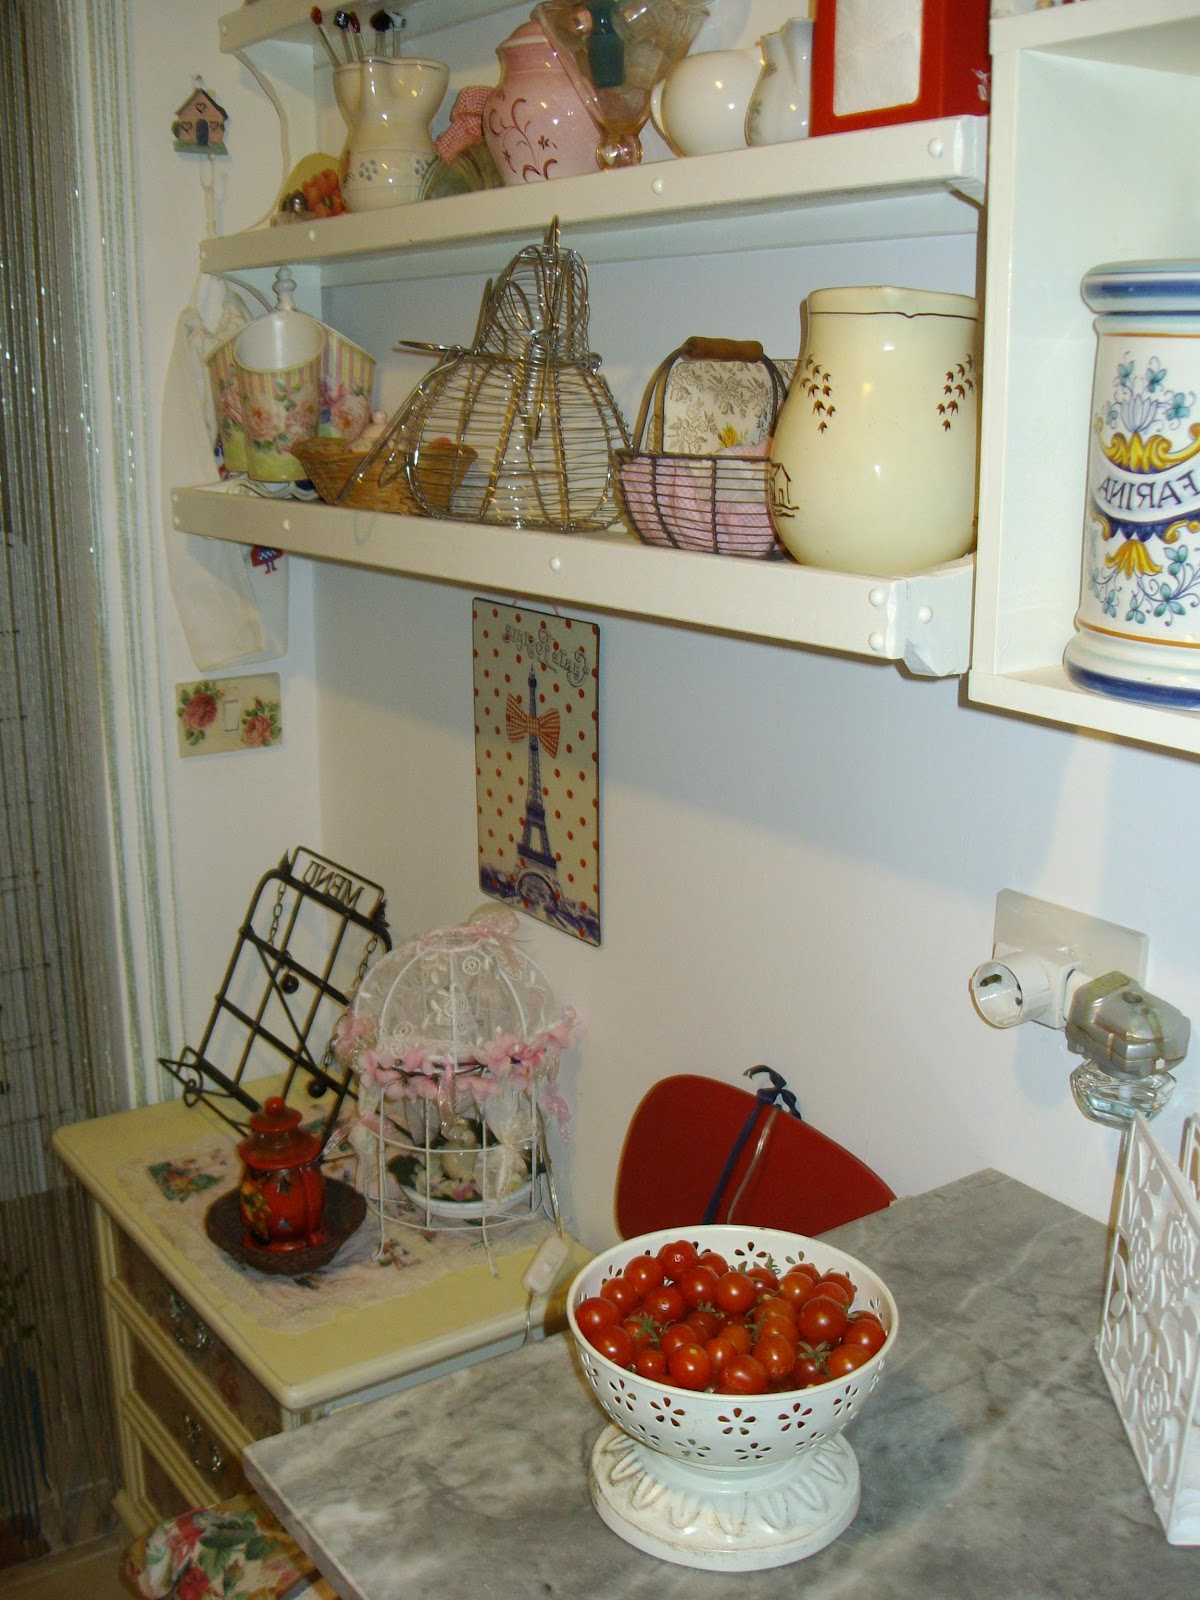 Re chic le vintage and shabby chic vignettes - Ikea bilancia cucina ...